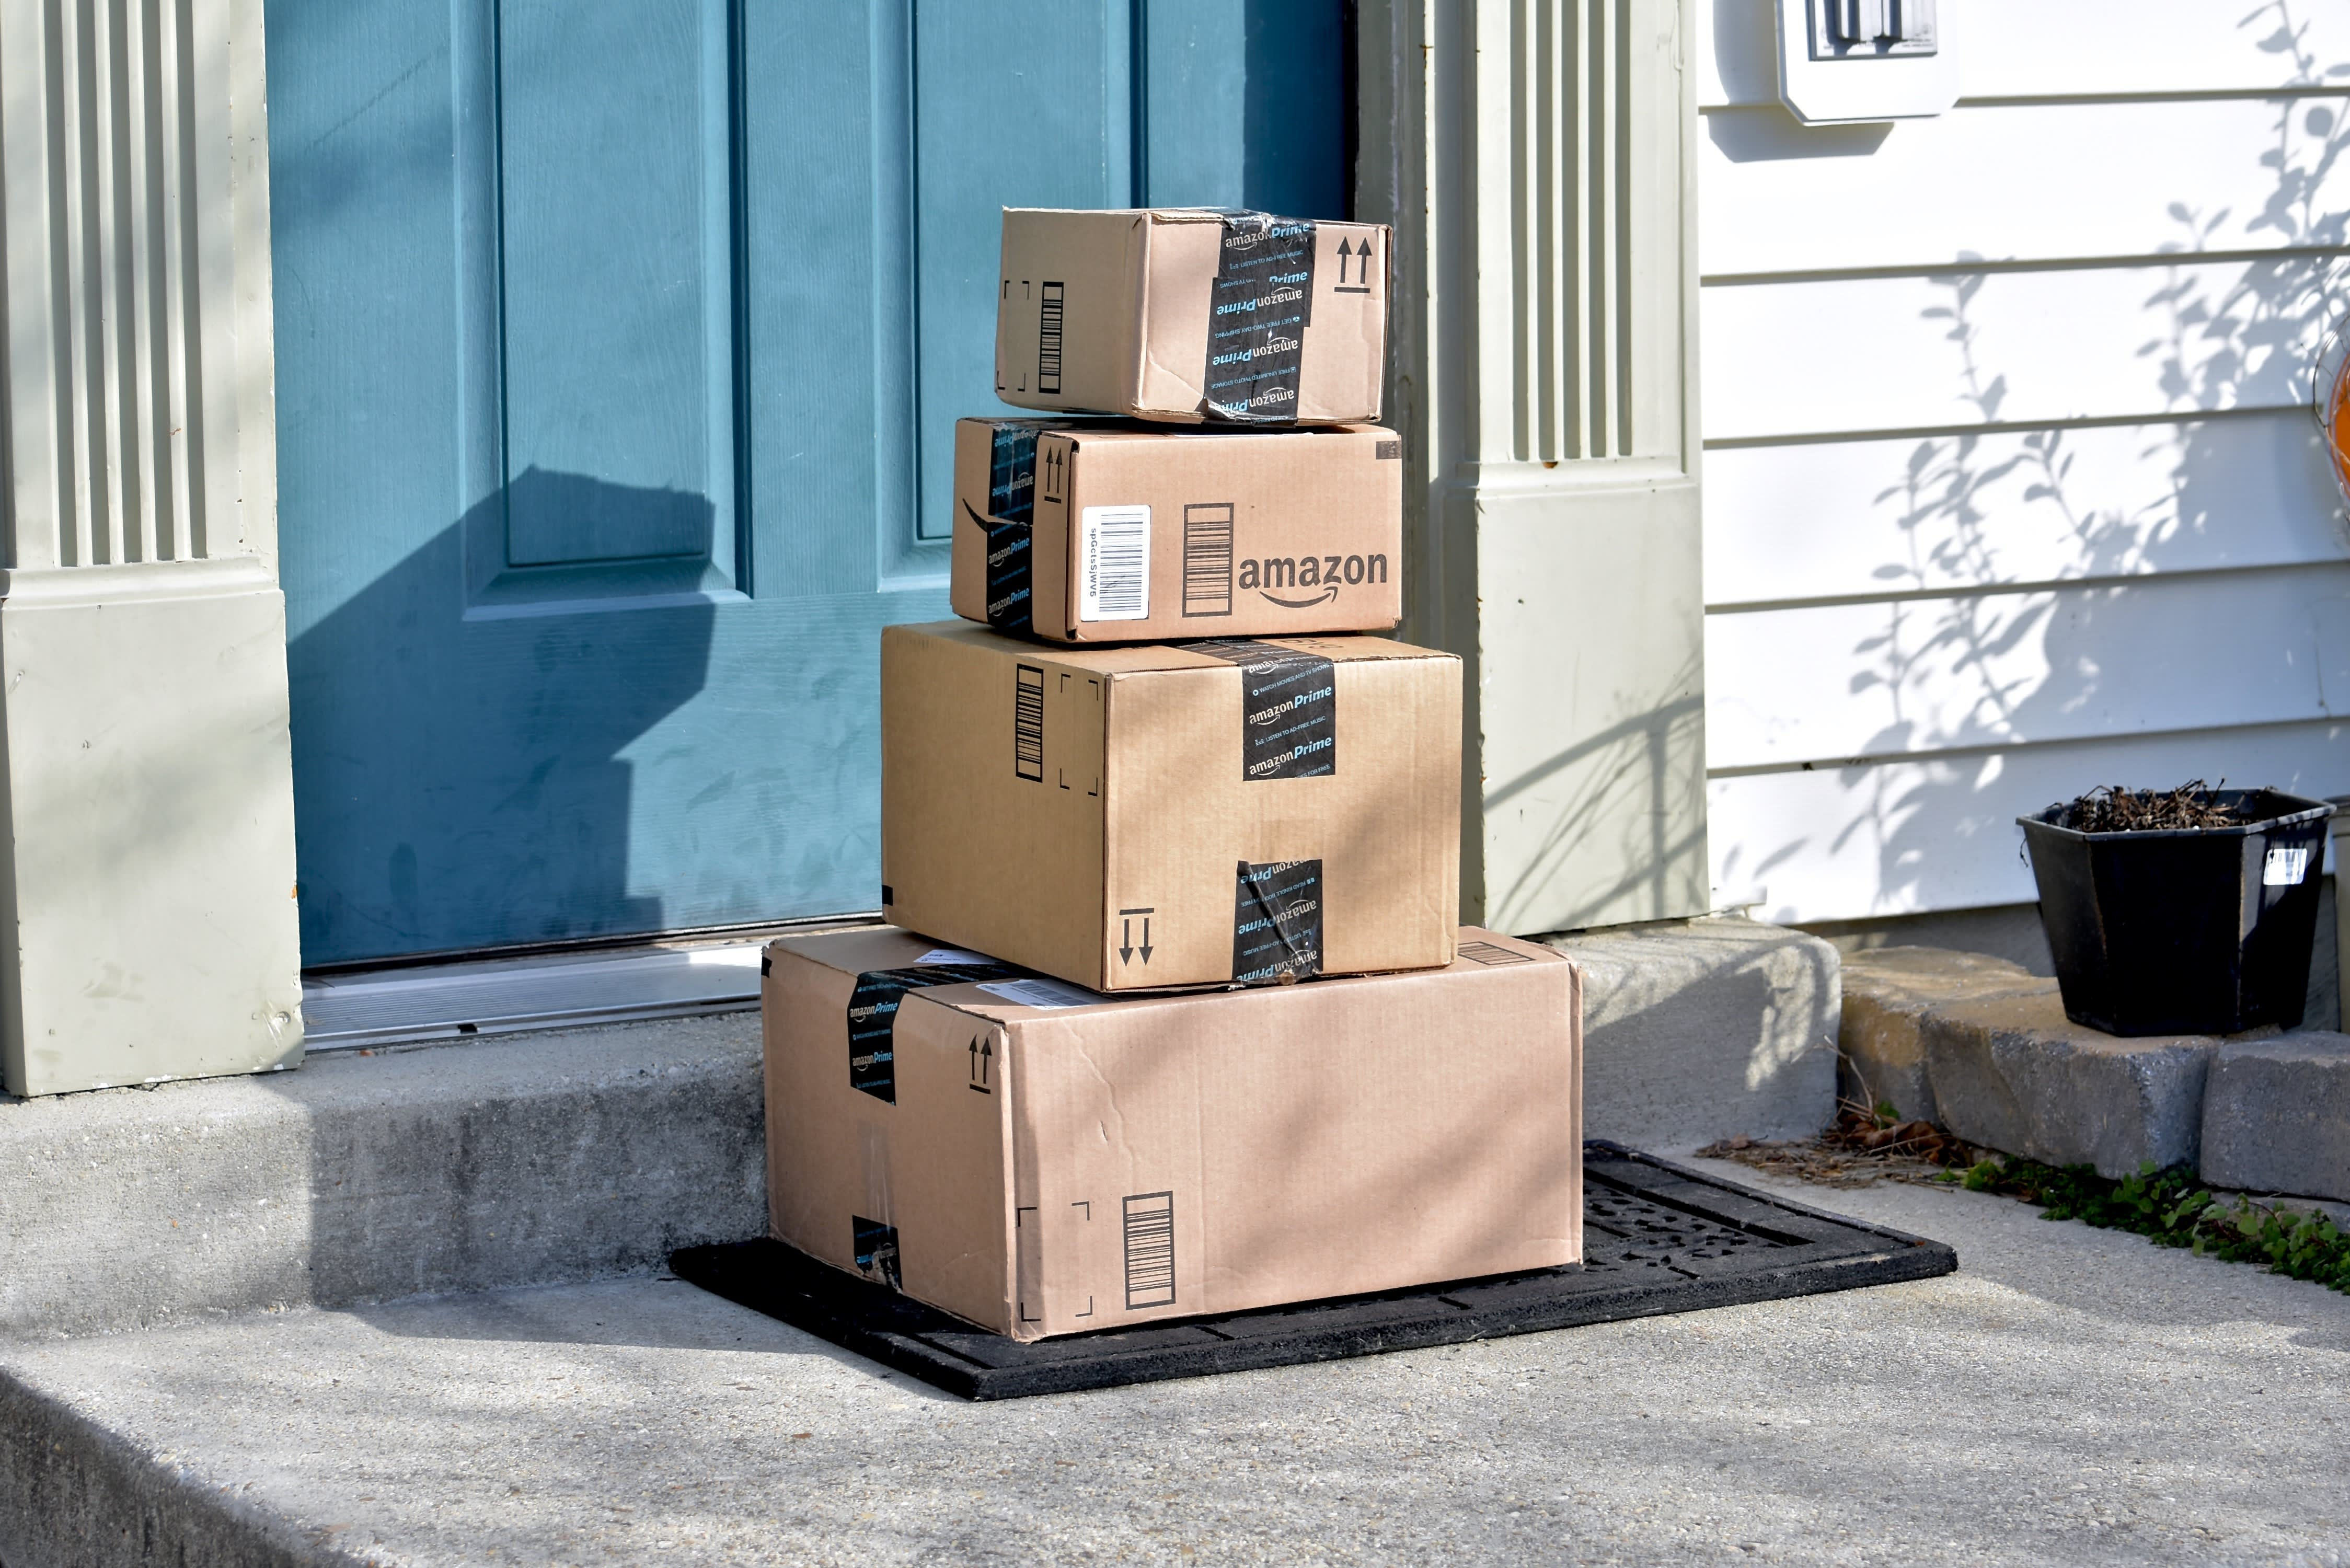 Amazon Prime Day 2019 Is Coming—Here's Everything We Know So Far